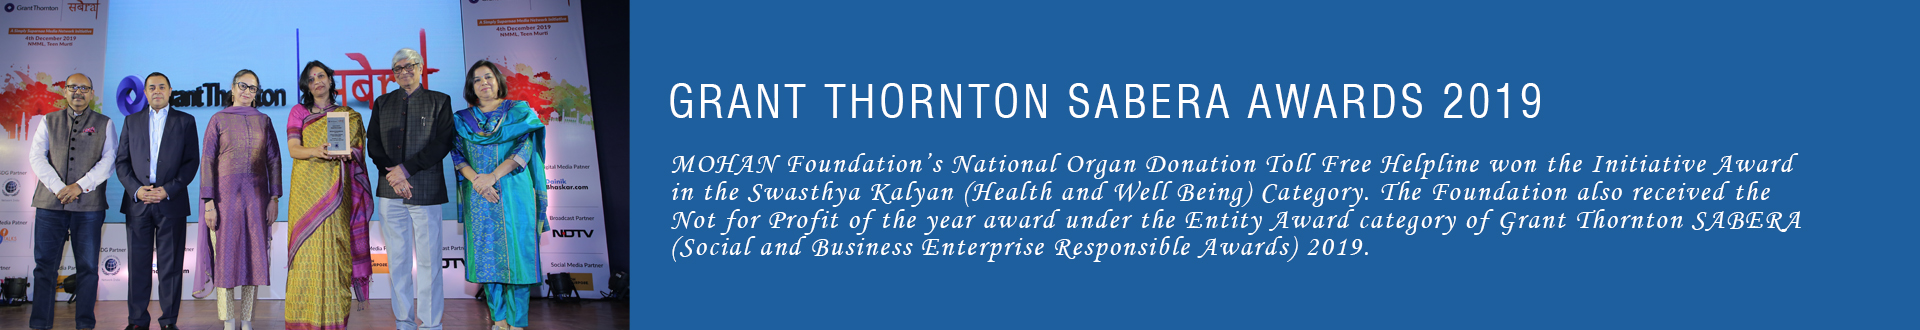 MOHAN Foundation wins at Grant Thornton SABERA